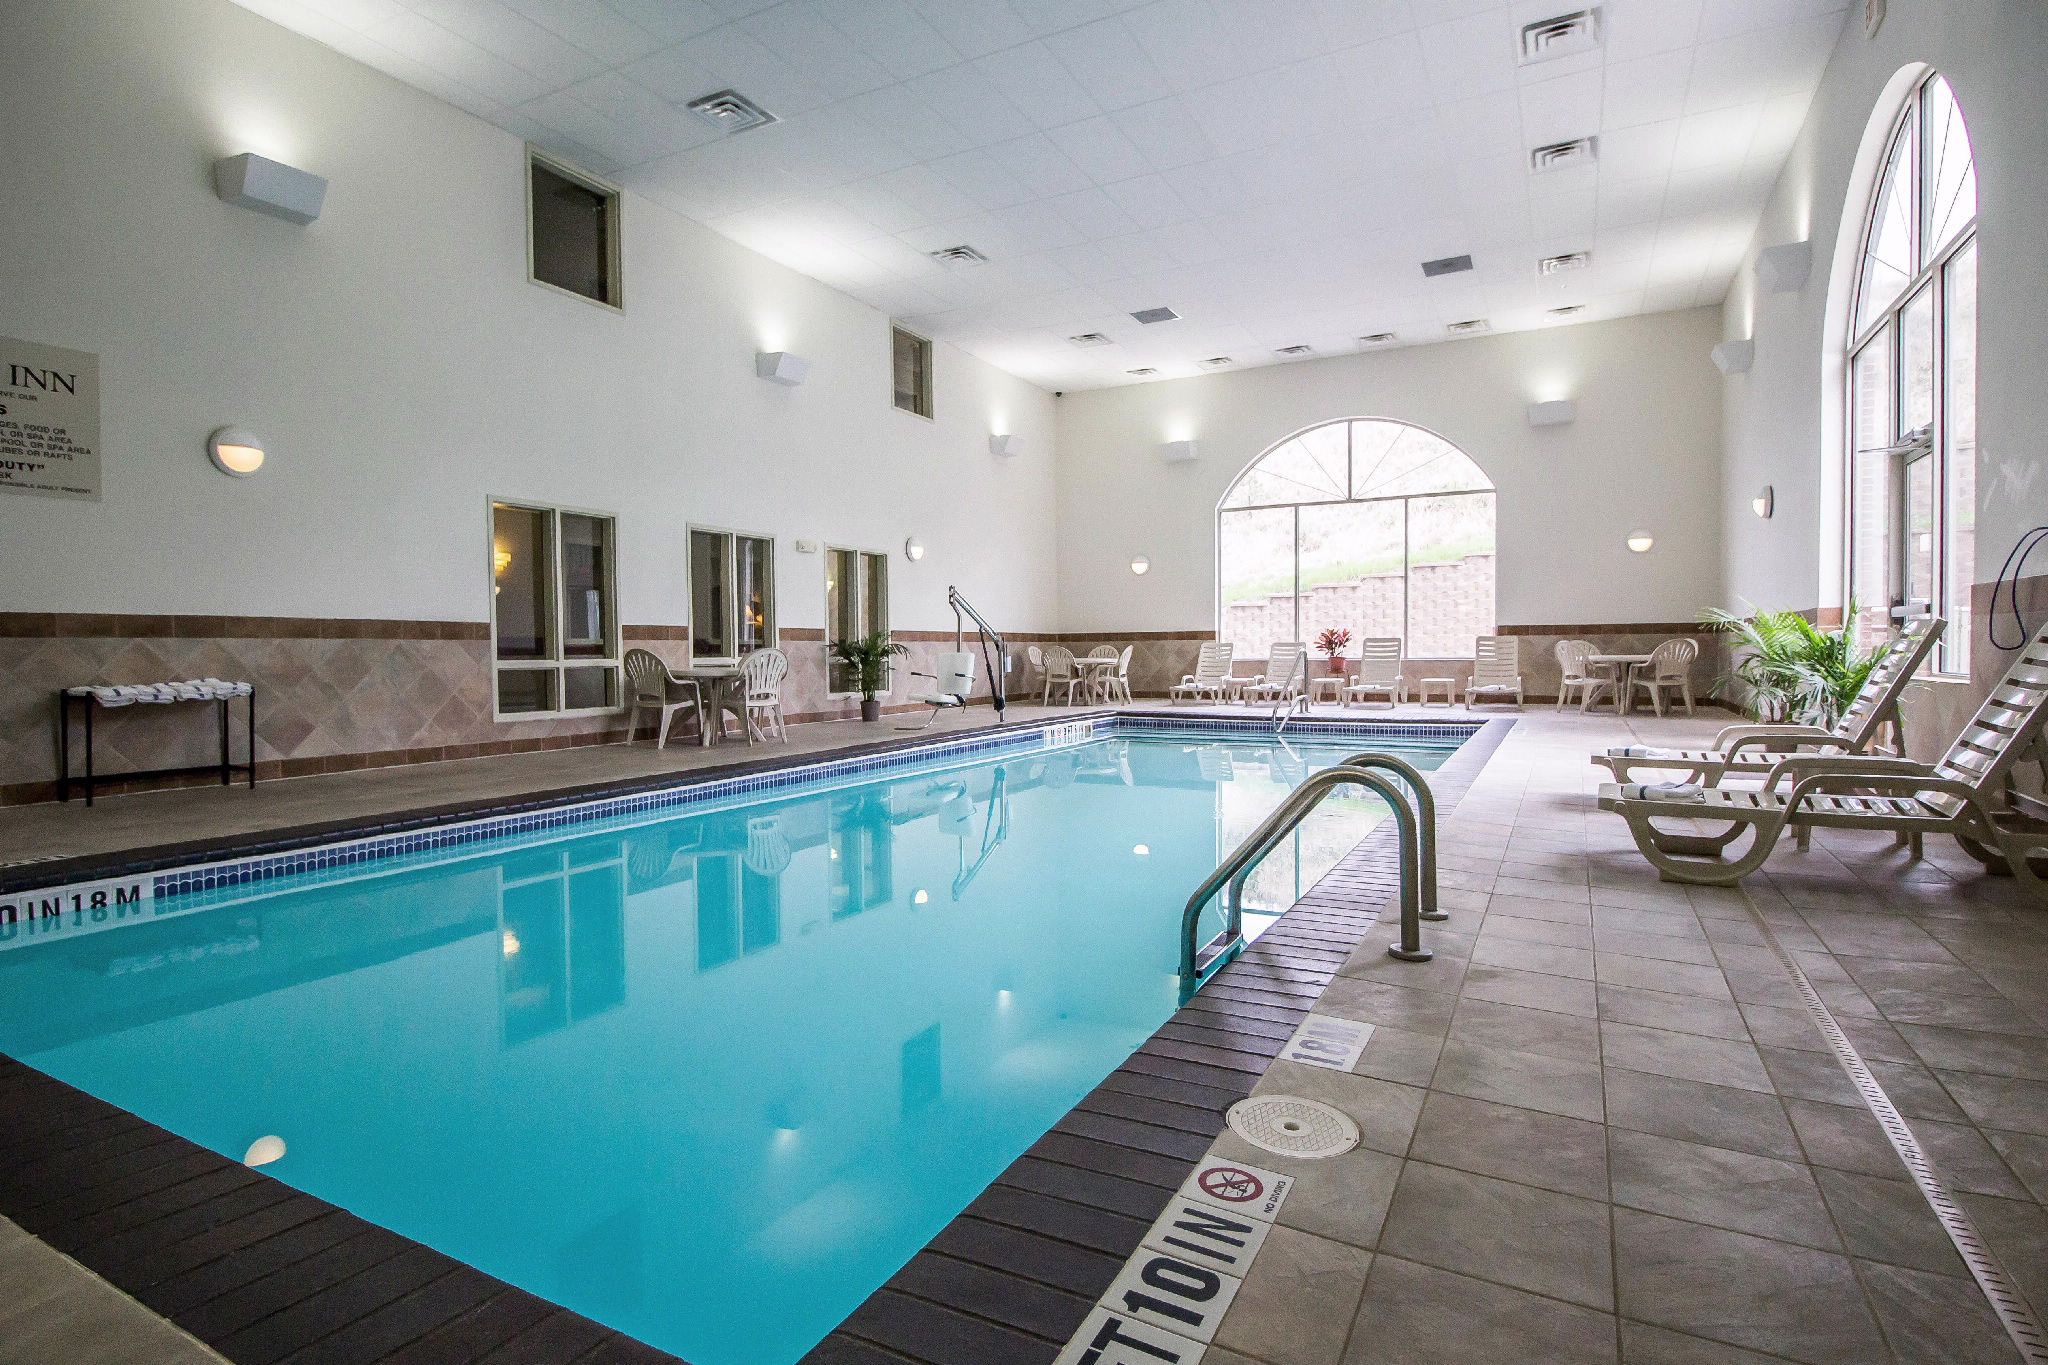 Comfort Inn Amp Suites In Rapid City Sd Whitepages